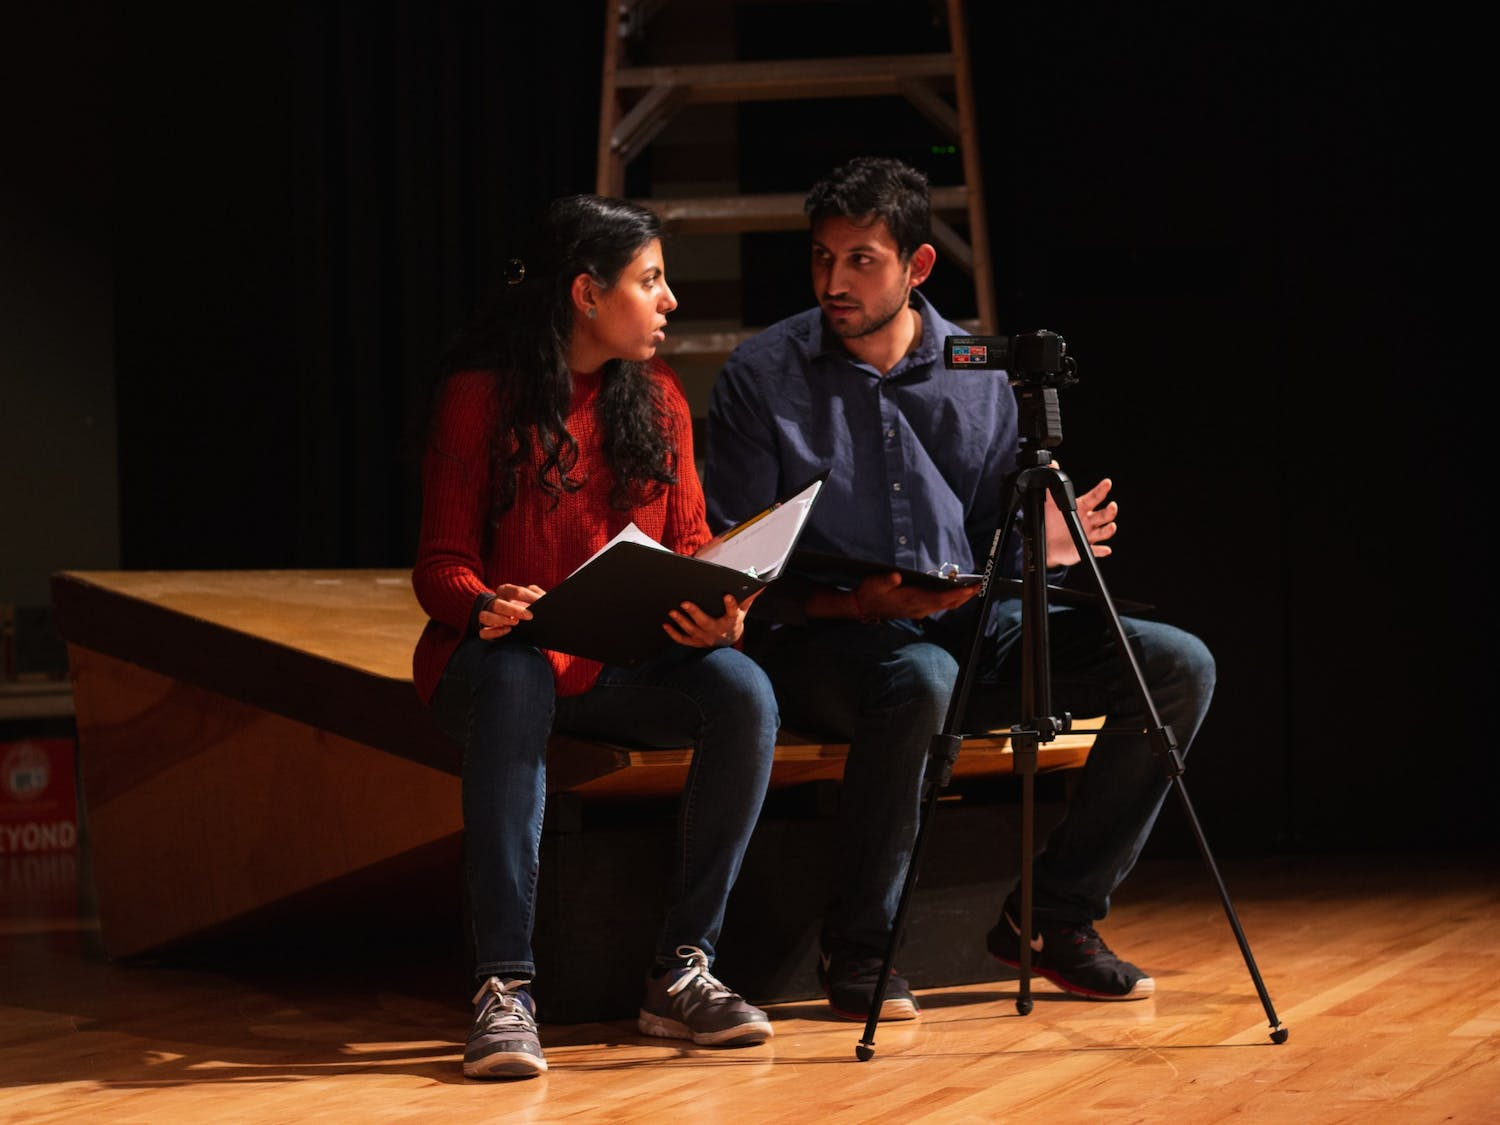 UNC student Mihir Shah and his sister Mansi Shah share a dialogue in his play written for the festival on Tuesday, Nov. 5, 2019 in the Sonja H. Stone Center.